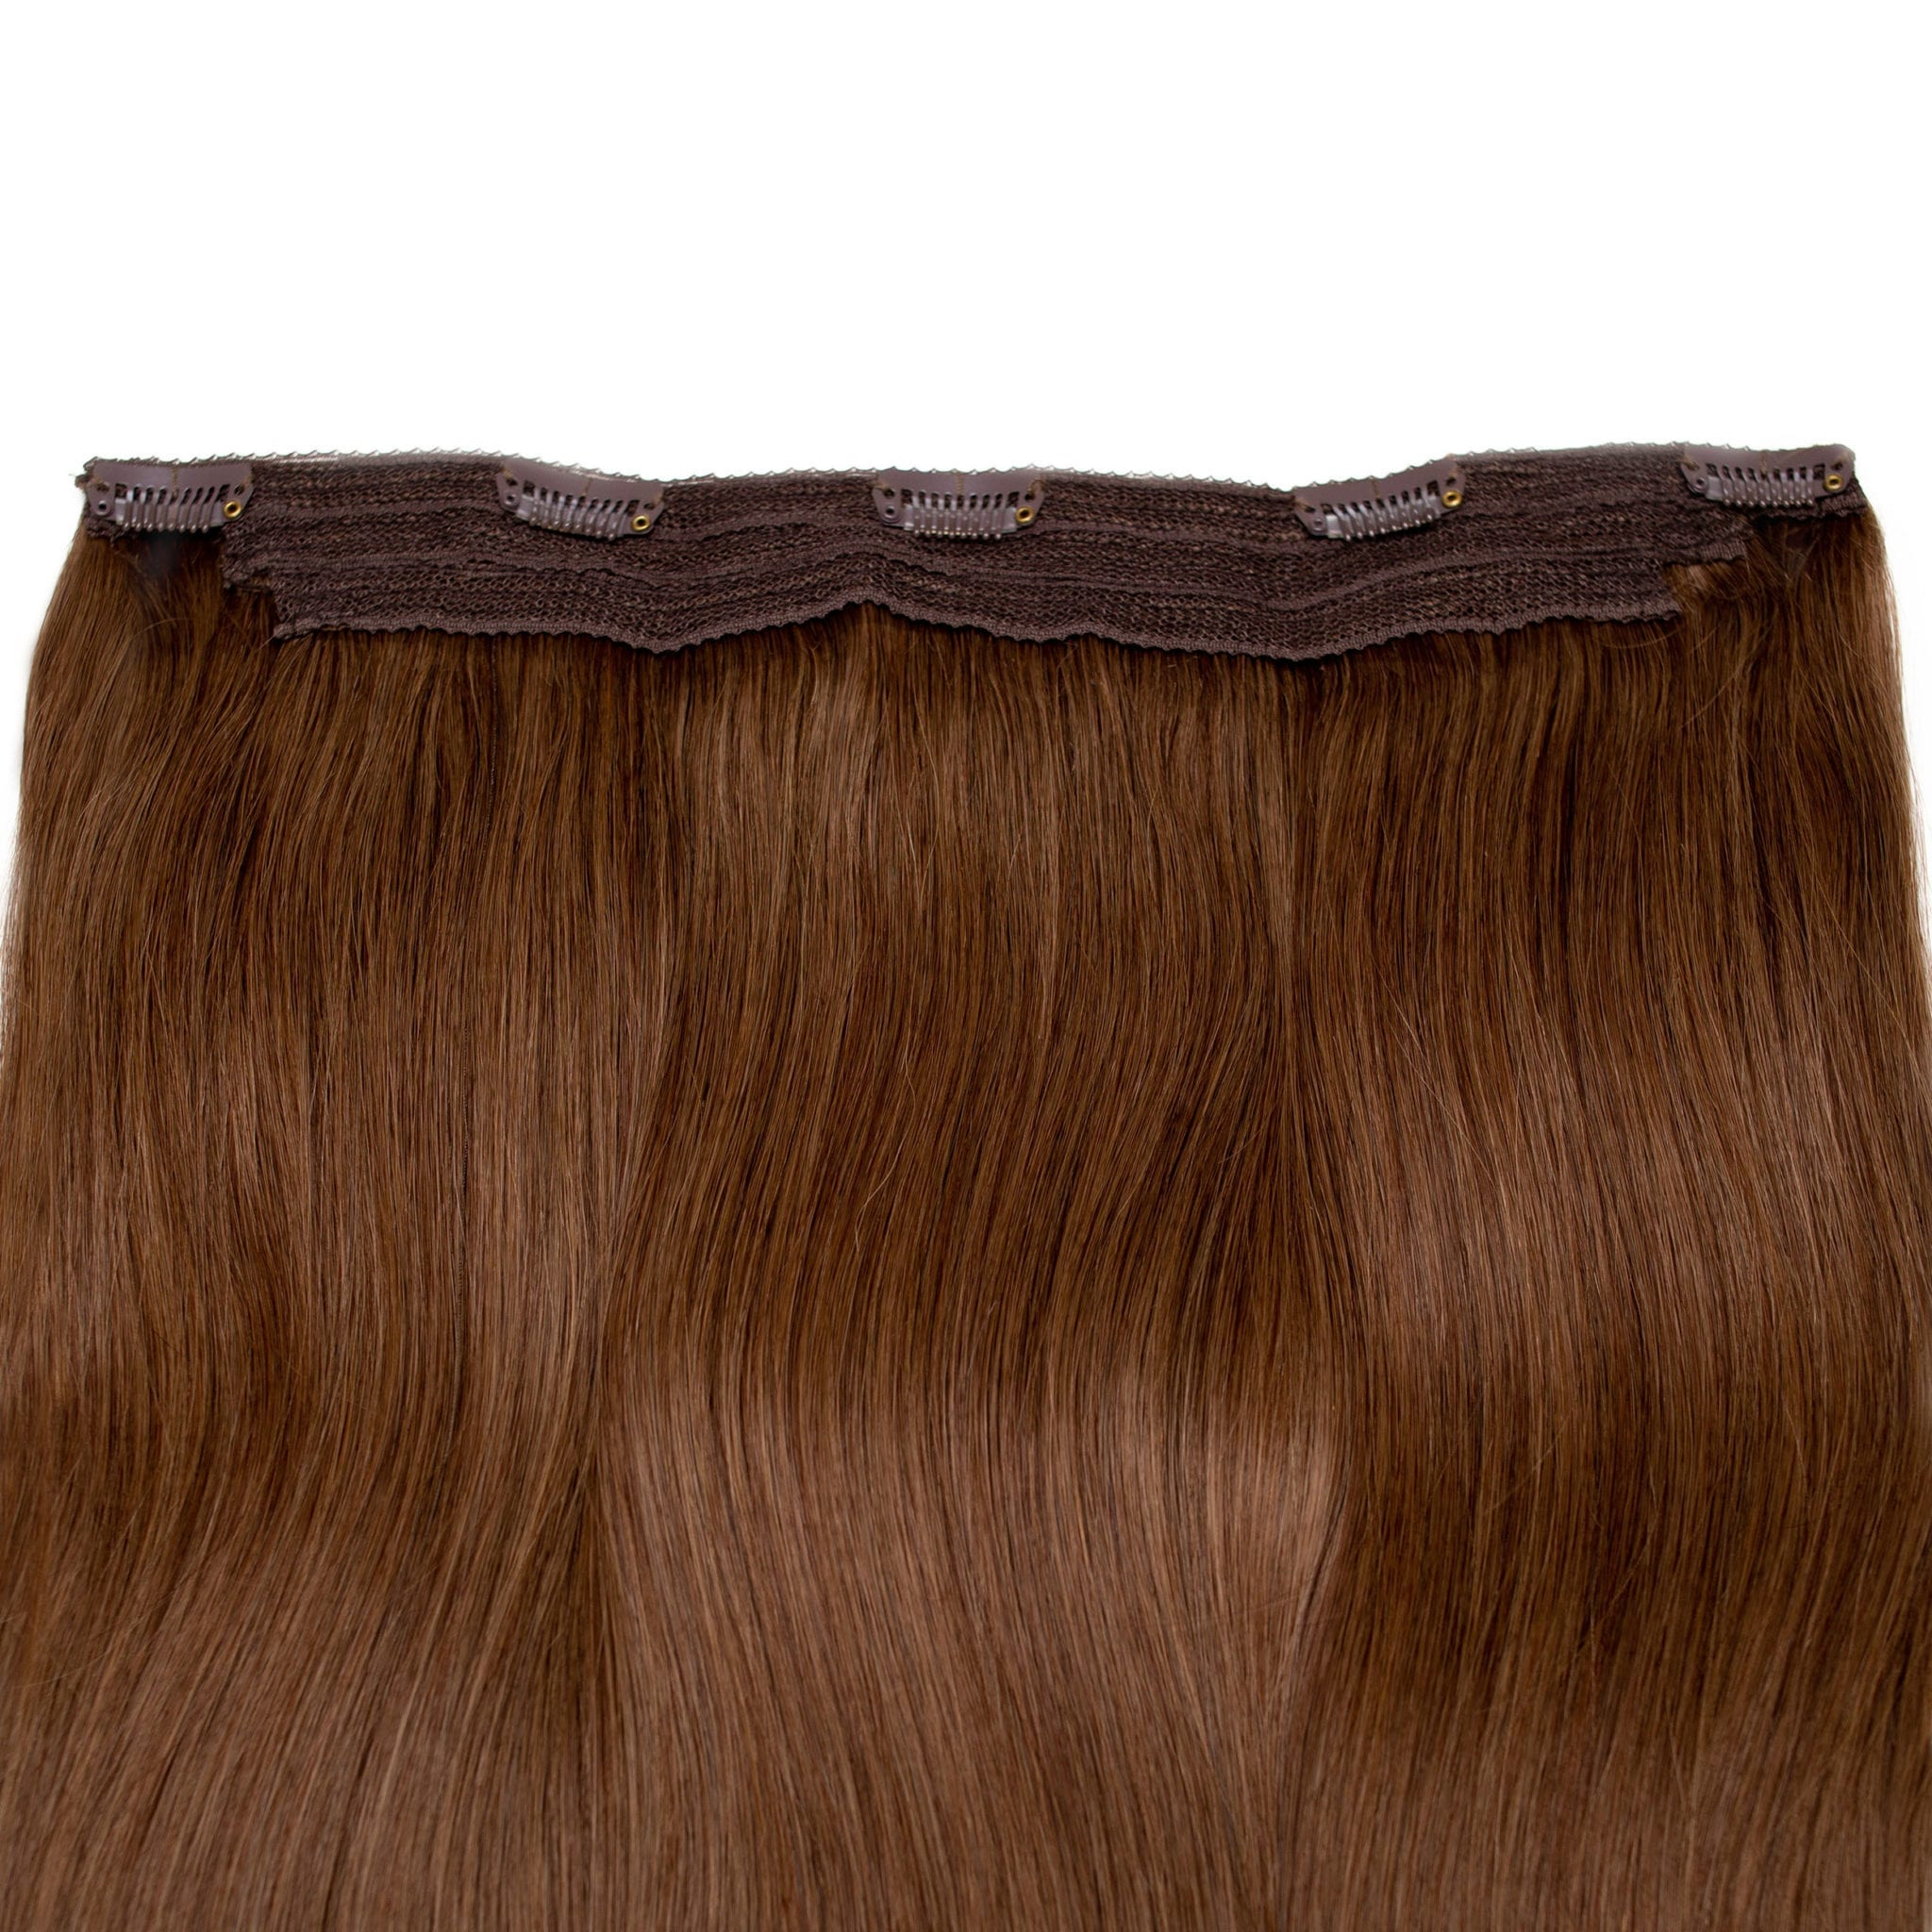 Edwards And Co. Extentions - Mocha in 1 piece